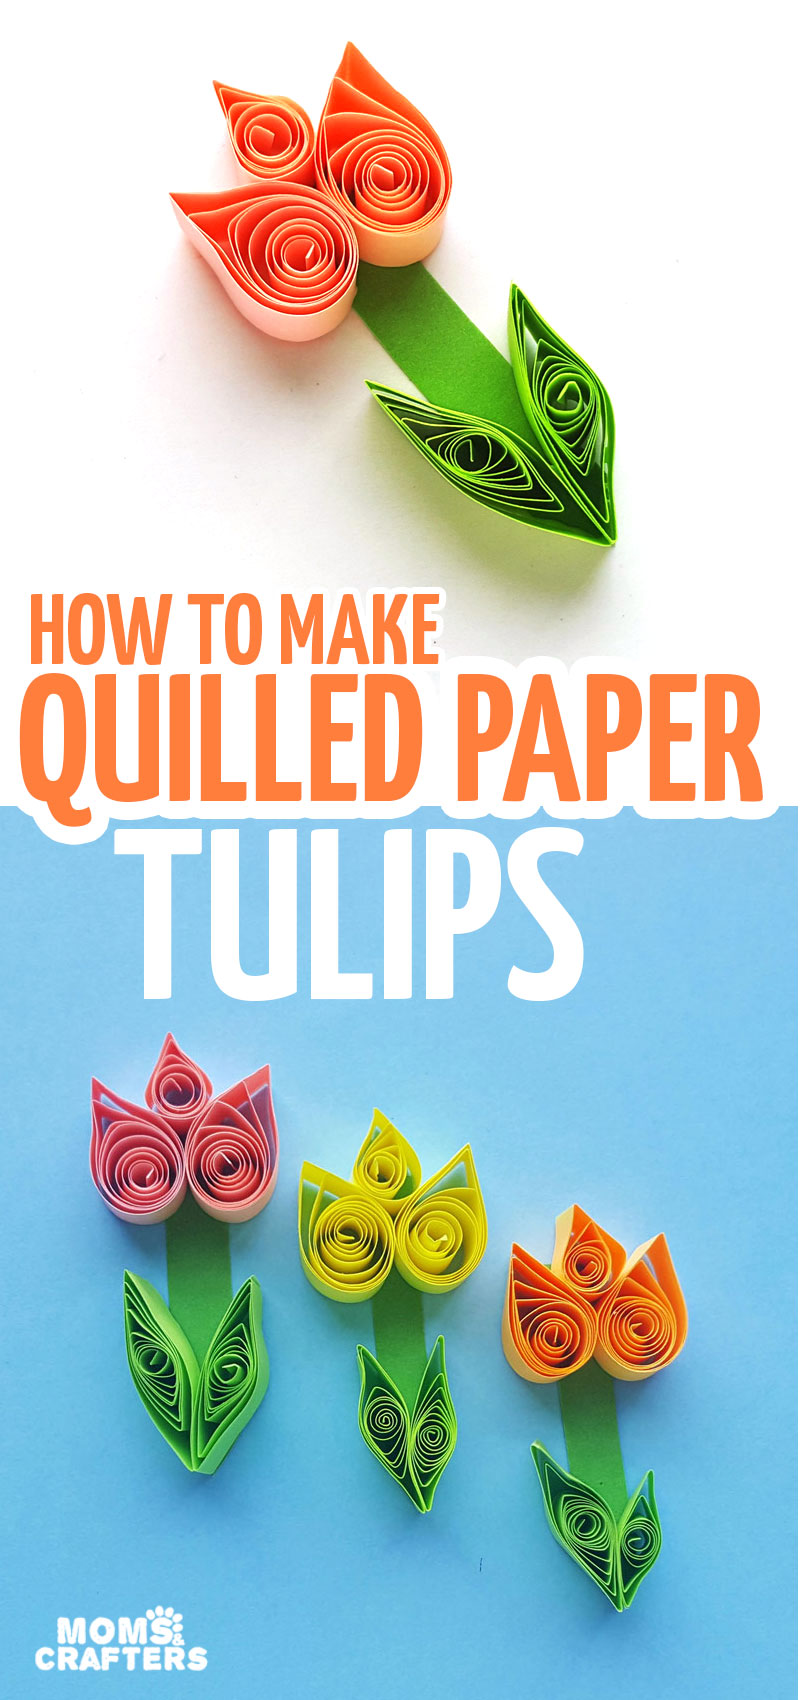 Click to learn how to make paper quilling tulips - a fun paper craft for Spring for kids, teens, and tweens. It's also a great quilled paper tutorial for beginners and a great Mother's Day card idea!